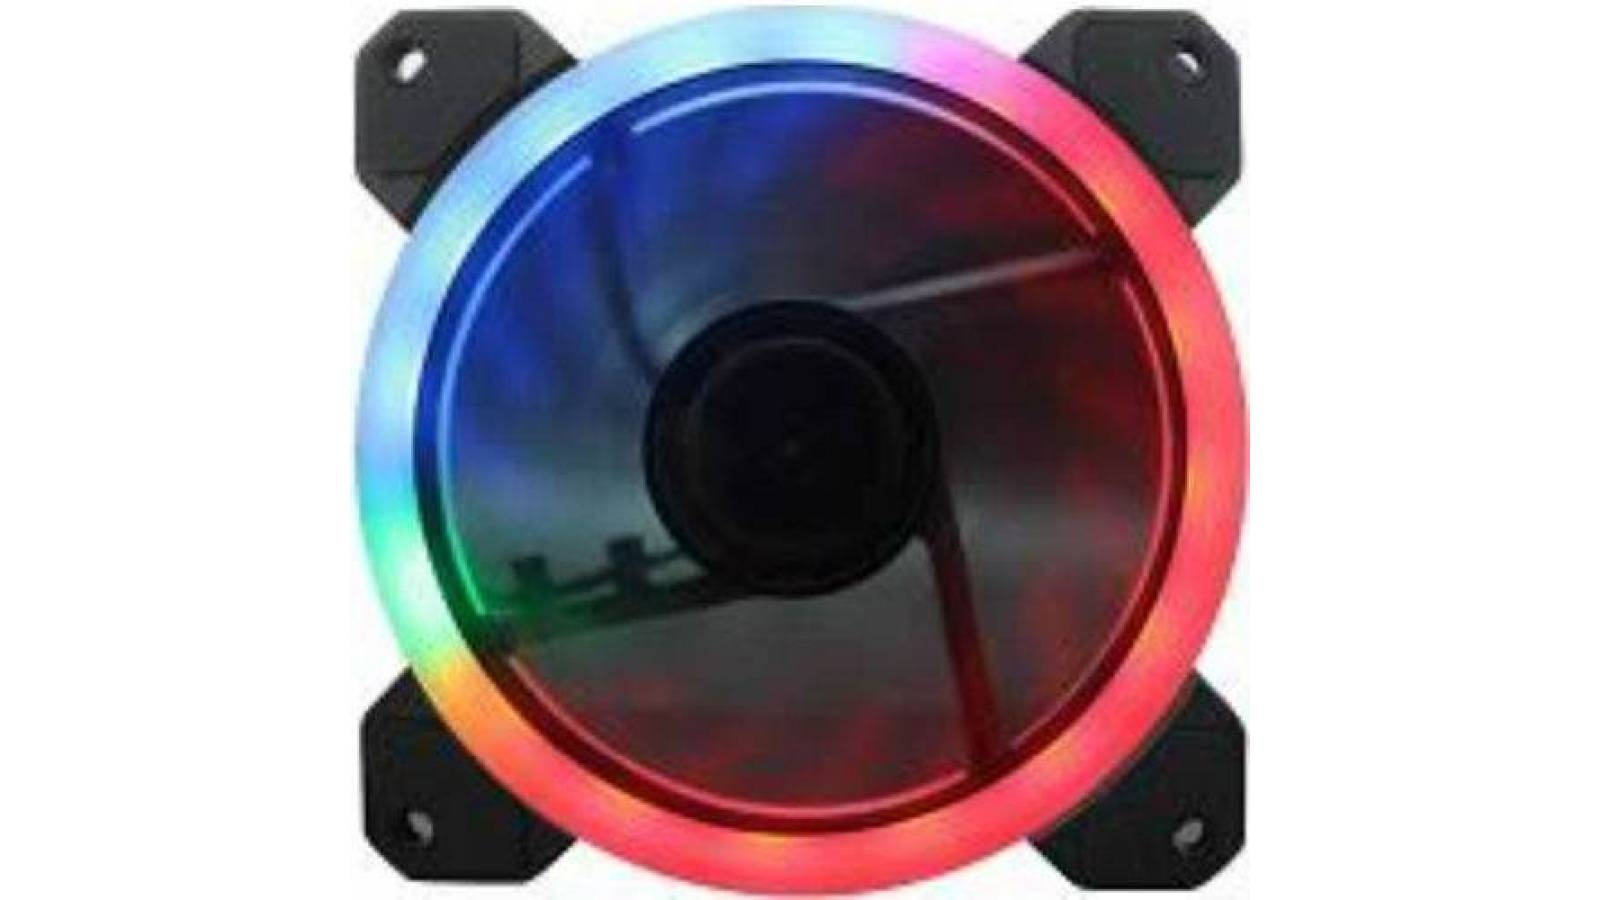 FAN GAMER 12 X 12 LED RGB